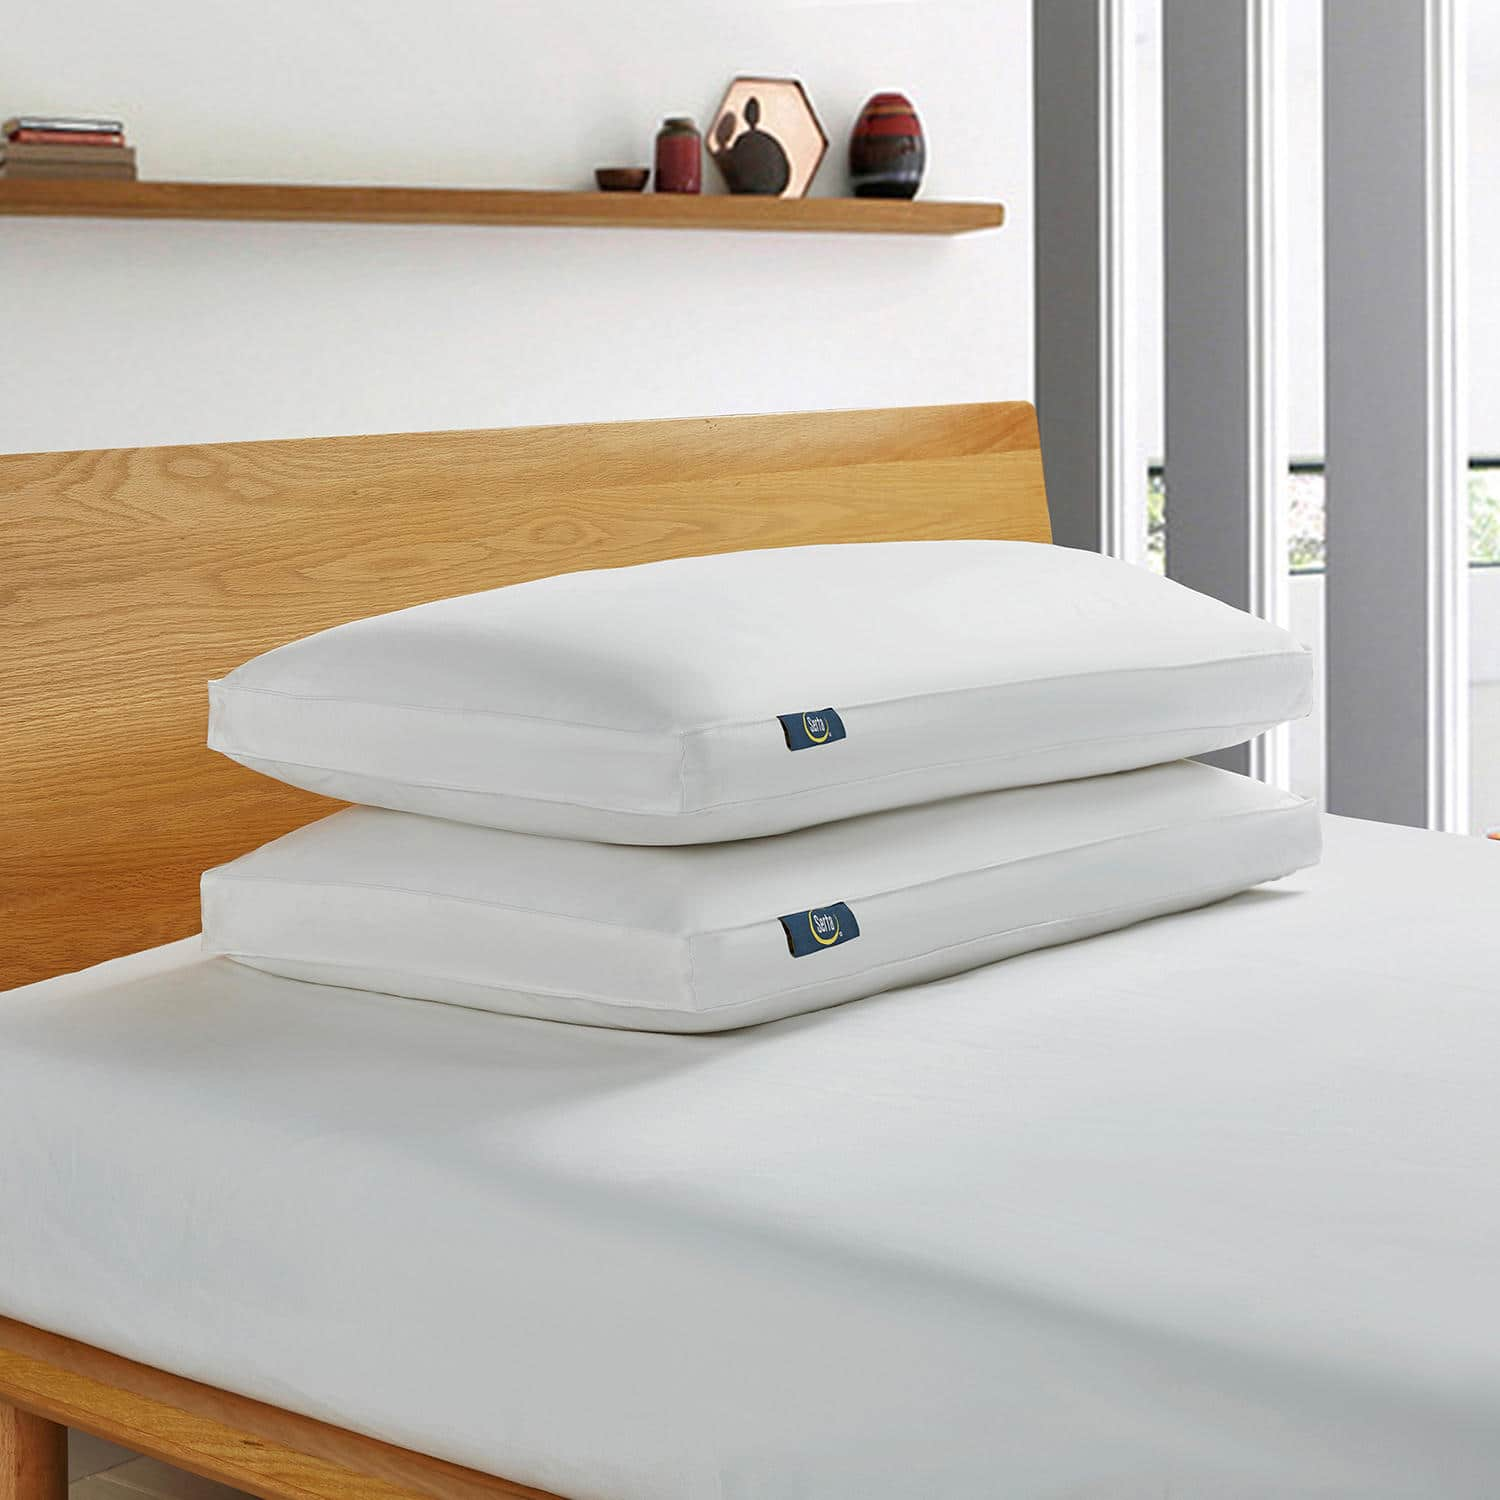 Serta White Goose Feather And Down Fiber Side Sleeper Pillow (2 Pack) JUMBO $24.98